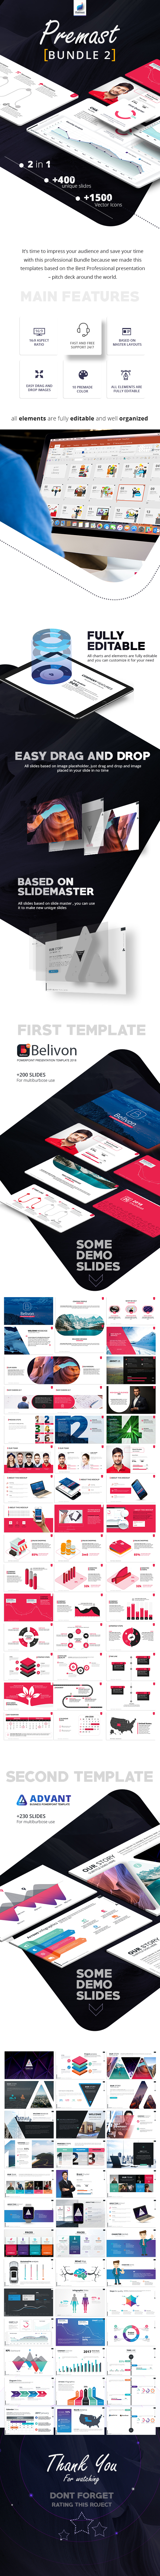 GraphicRiver Premast 2 Business PowerPoint Template in 1 Bundle 20696305